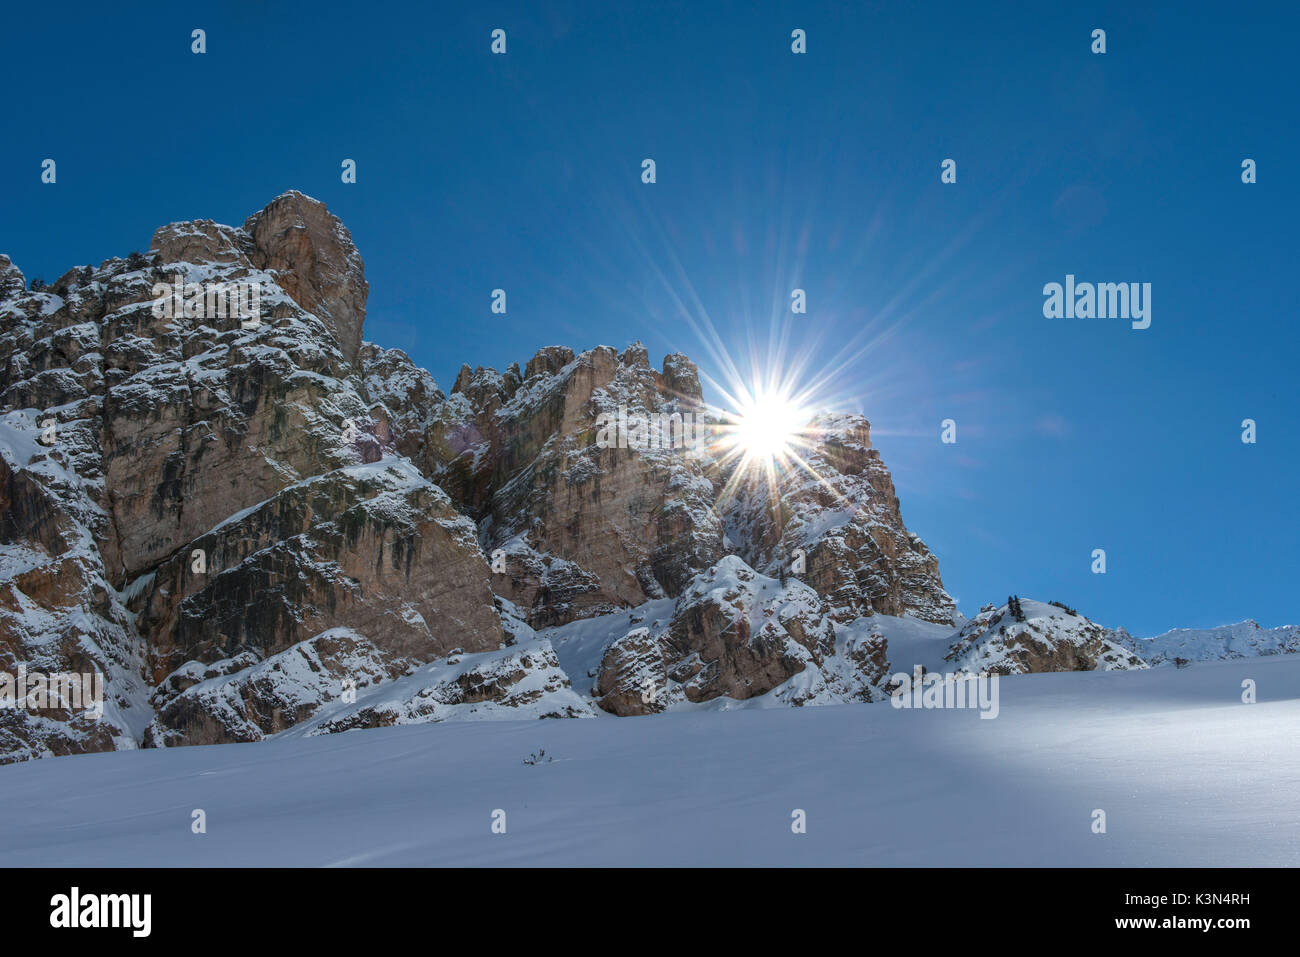 Fanes, Dolomites, South Tyrol, Italy. The sun rises behind the peaks of Piciodel - Stock Image